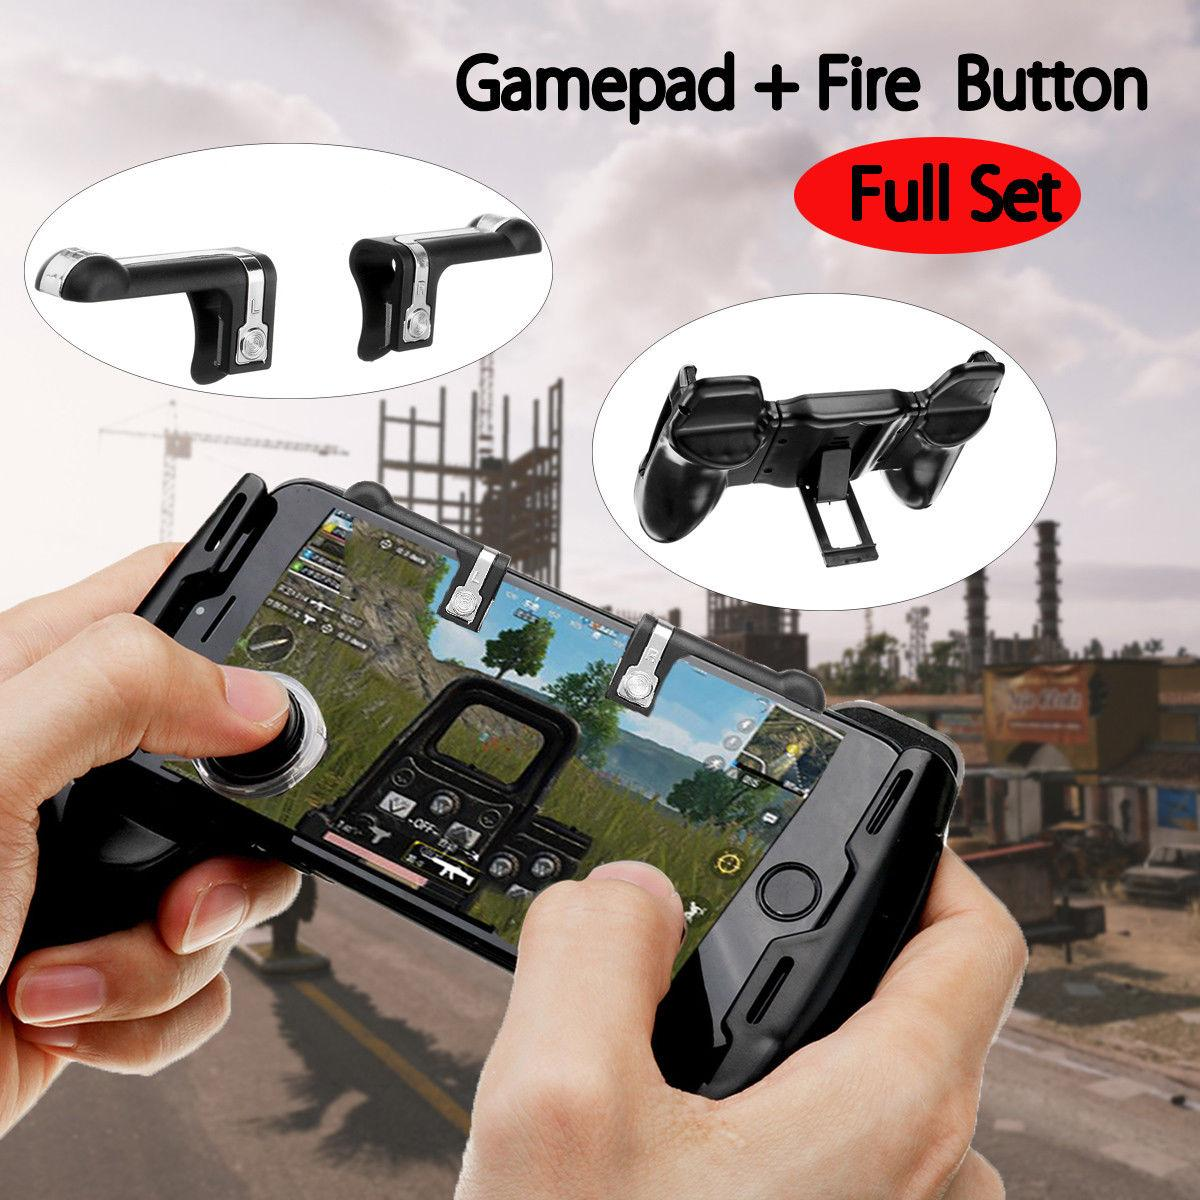 V6.0 L1r1 Sharpshooter Gaming Trigger Fire Button Aim Key Phone Shooter Controller Pubg + Gaming Joystick Handle Holder Controller For Games On Iphone And Android By Wripples.